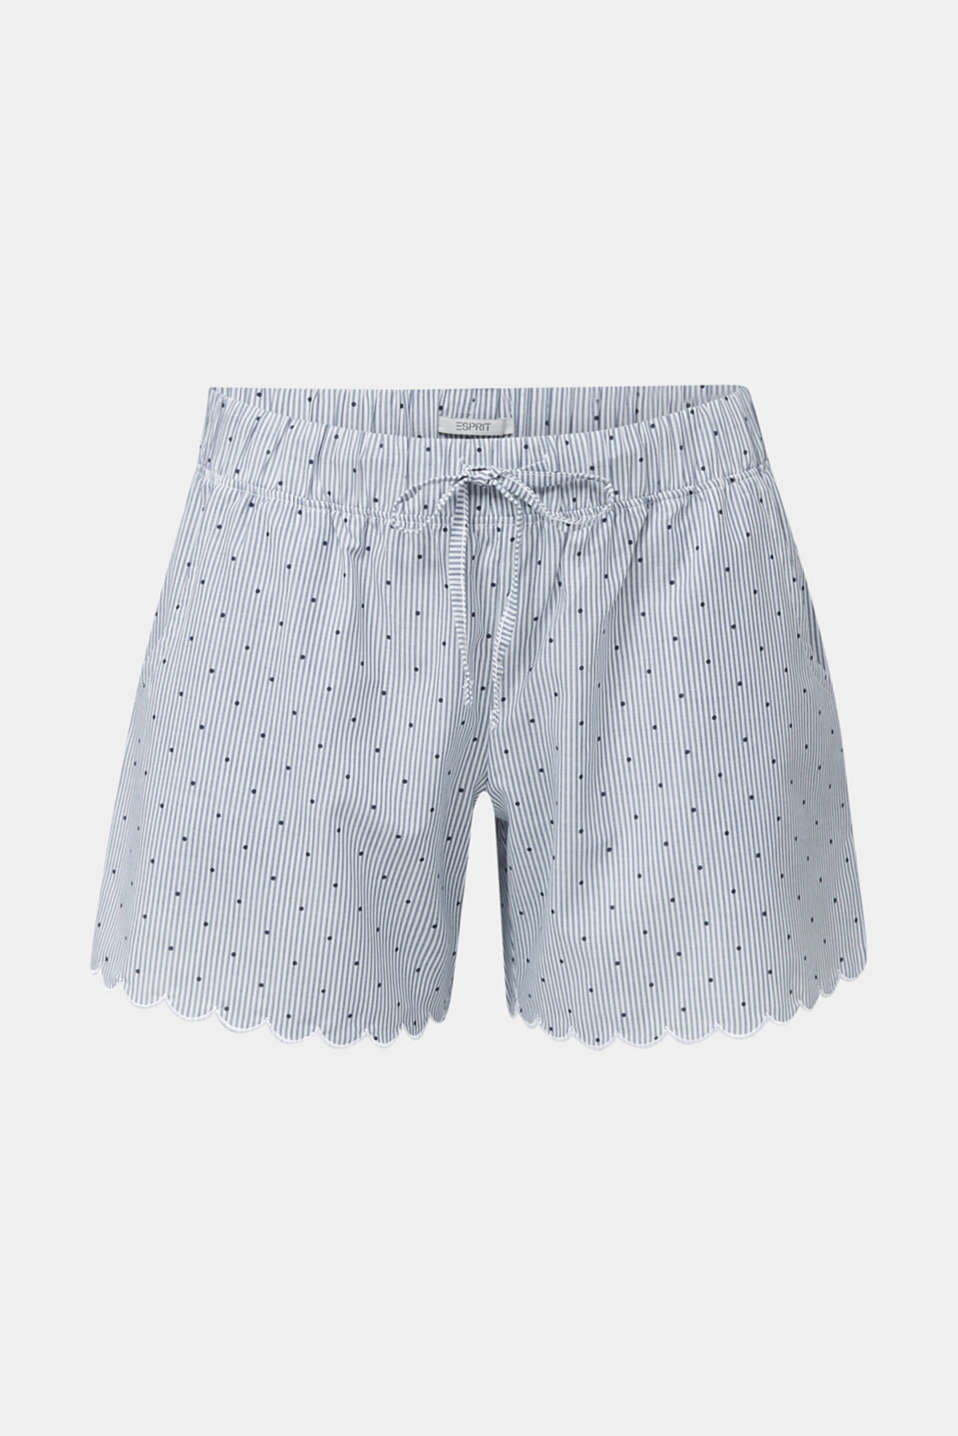 Woven shorts with a mix of patterns, 100% cotton, BLUE LAVENDER, detail image number 7